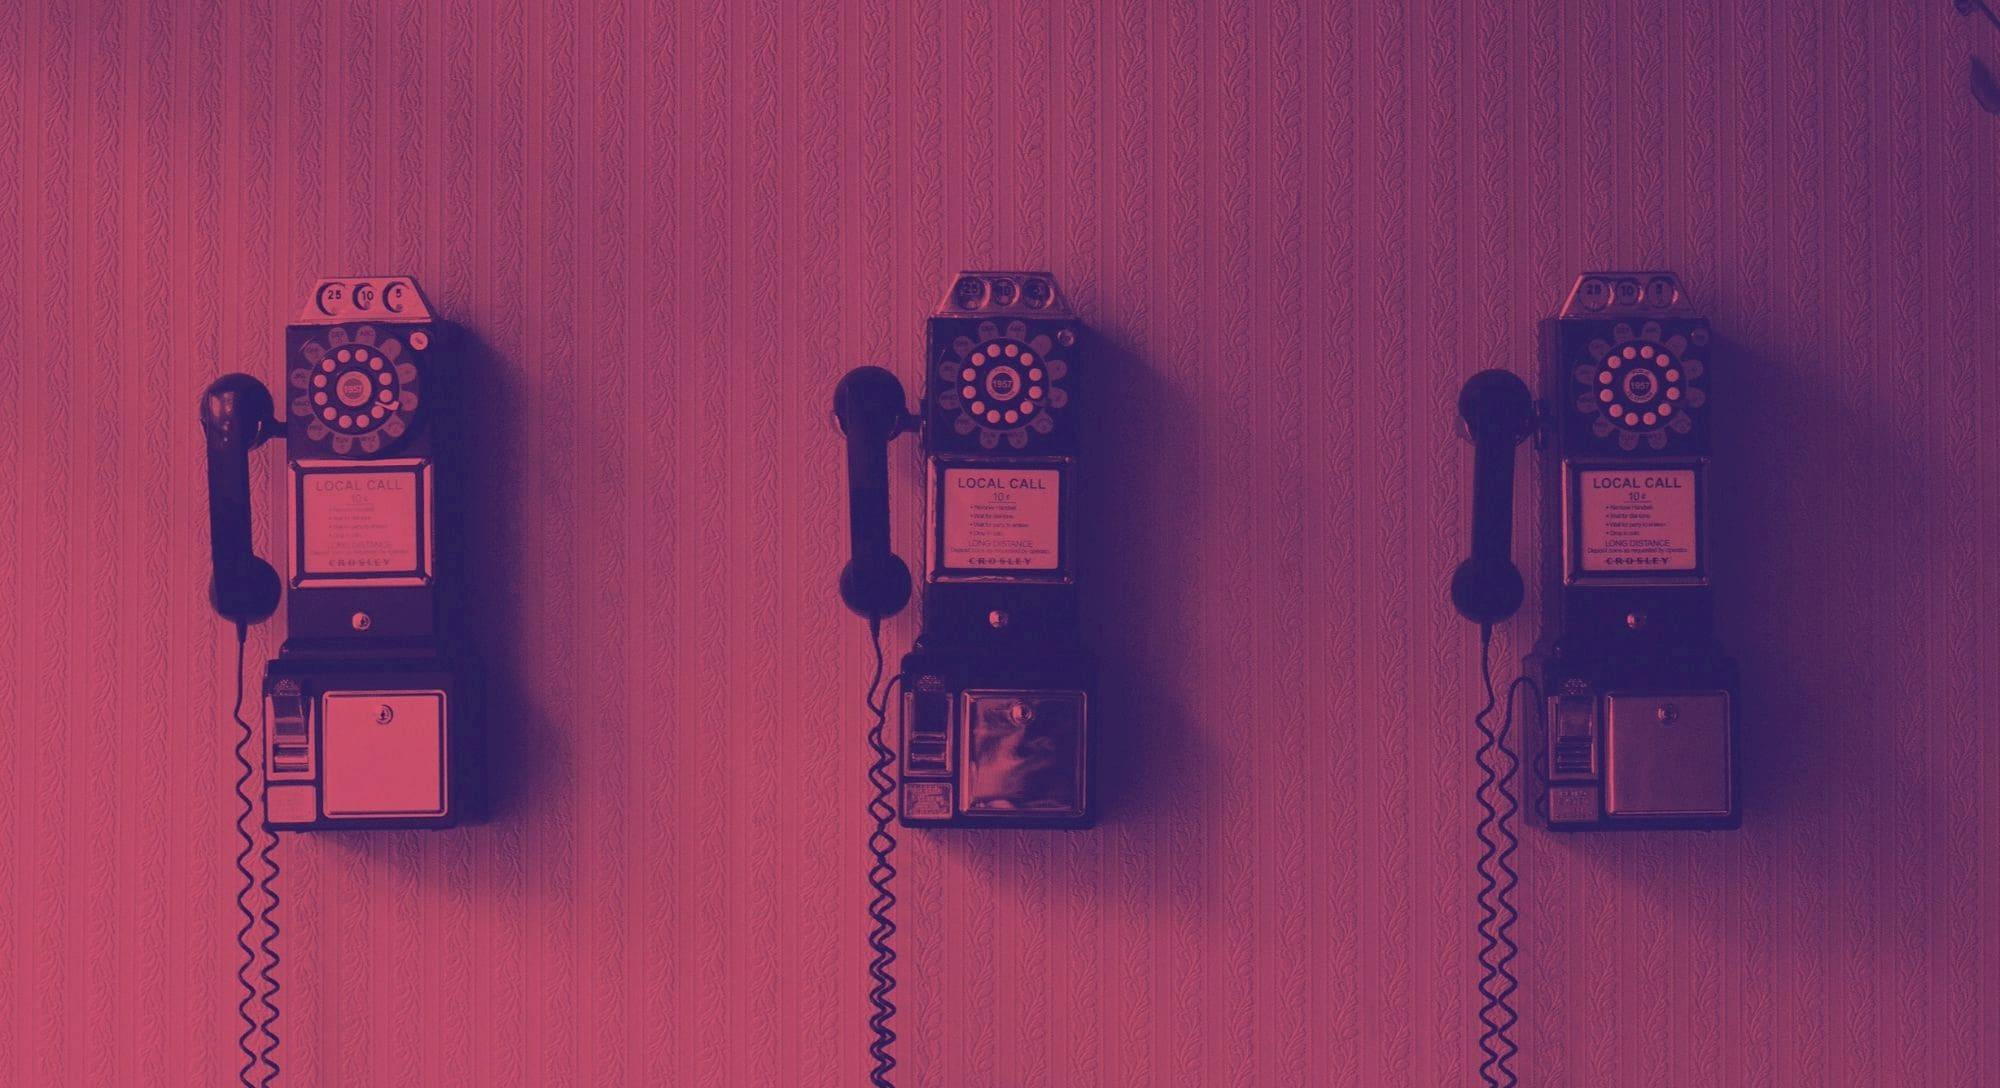 How to improve communication at work (without awkwardness)